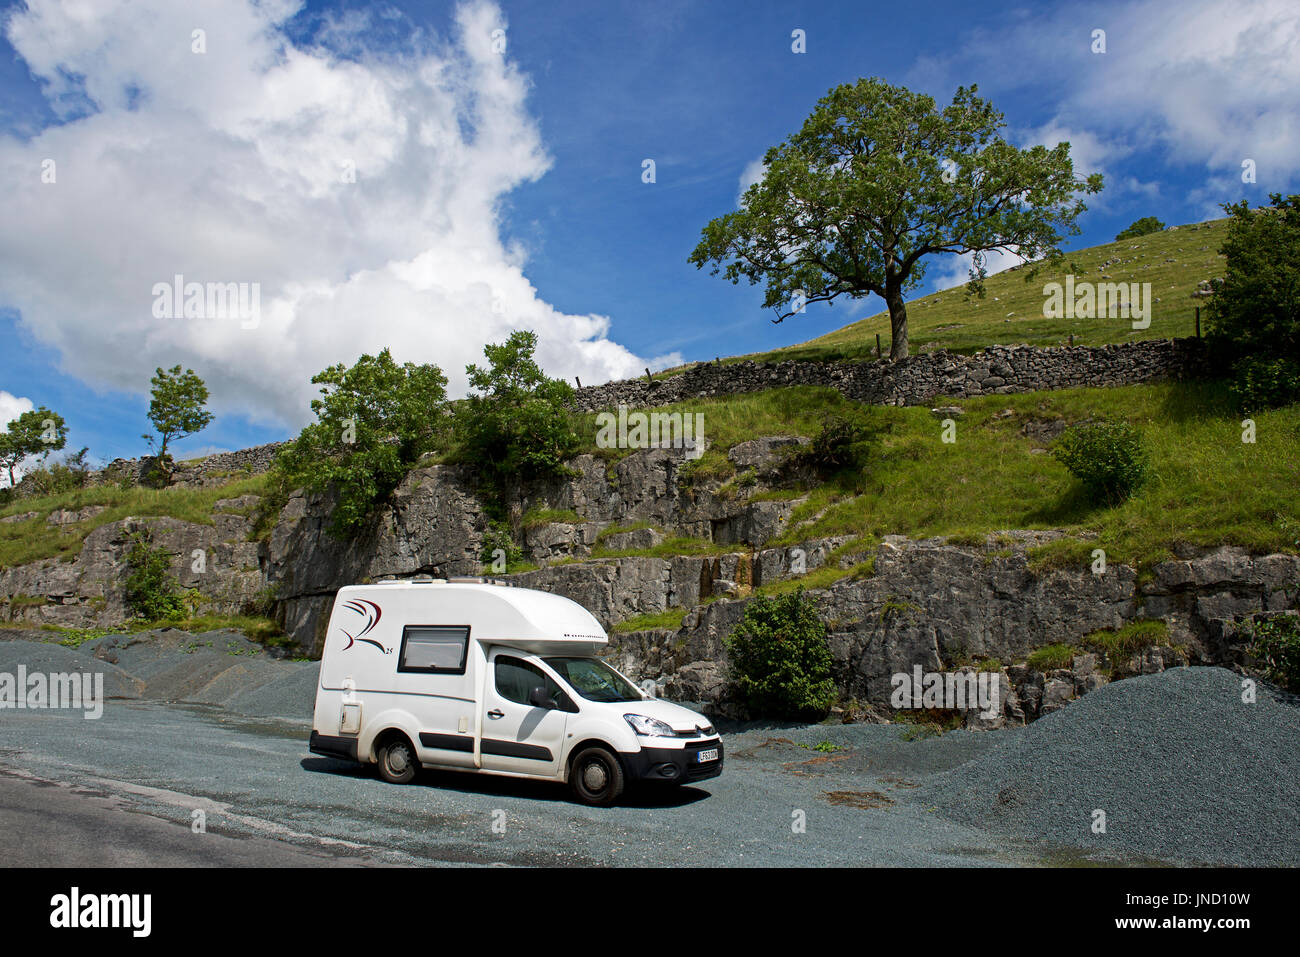 Romahome 25, small motorhome, parked in lay-by, Yorkshire Dales National Park, North Yorkshire, England UK - Stock Image